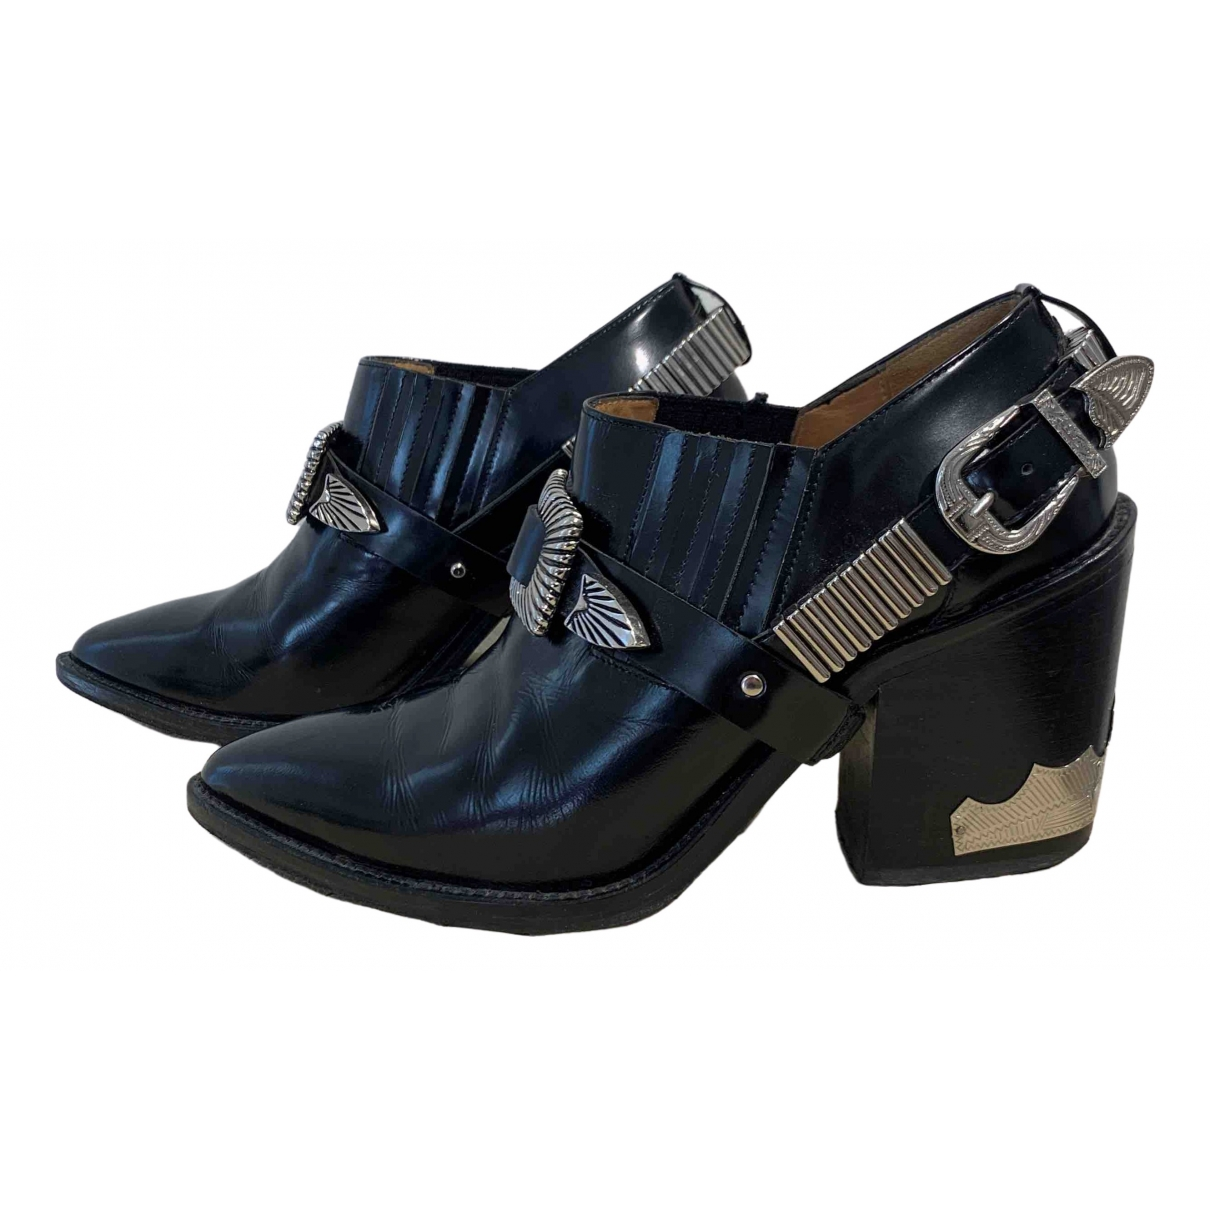 Toga Pulla \N Black Leather Boots for Women 37 EU